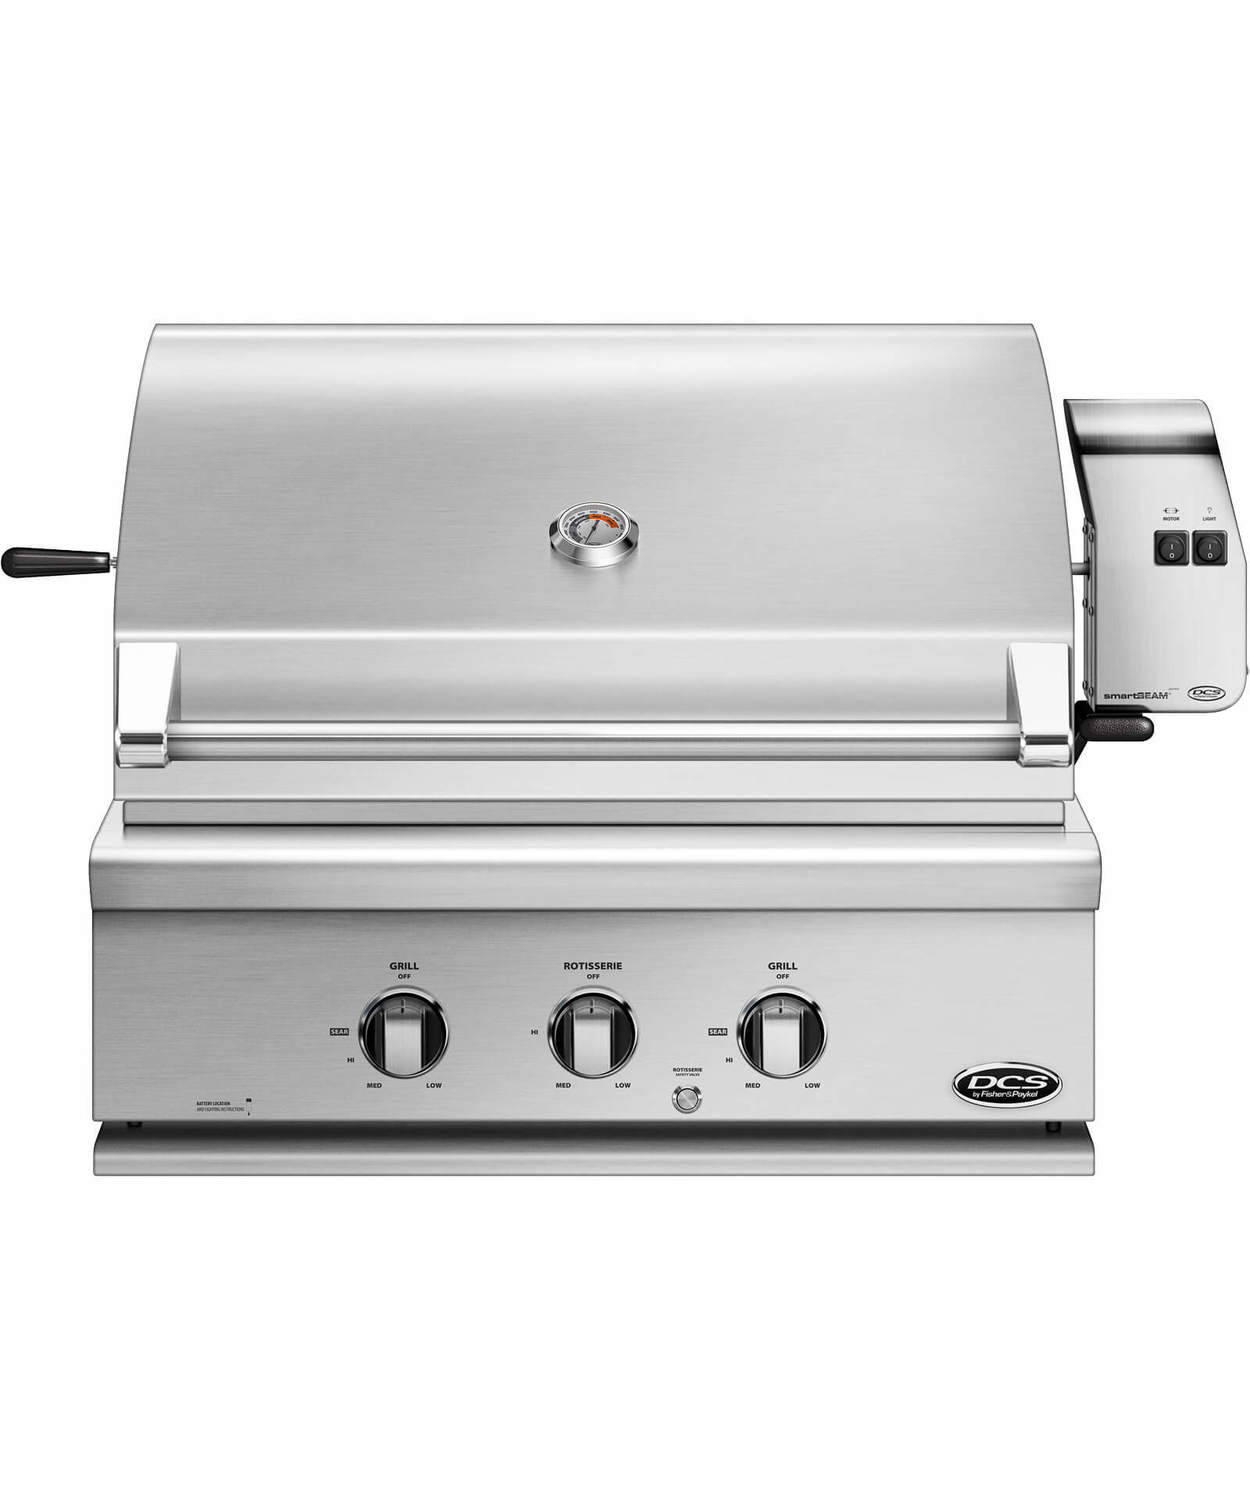 "Dcs30"" Series 7 Grill, Natural Gas"